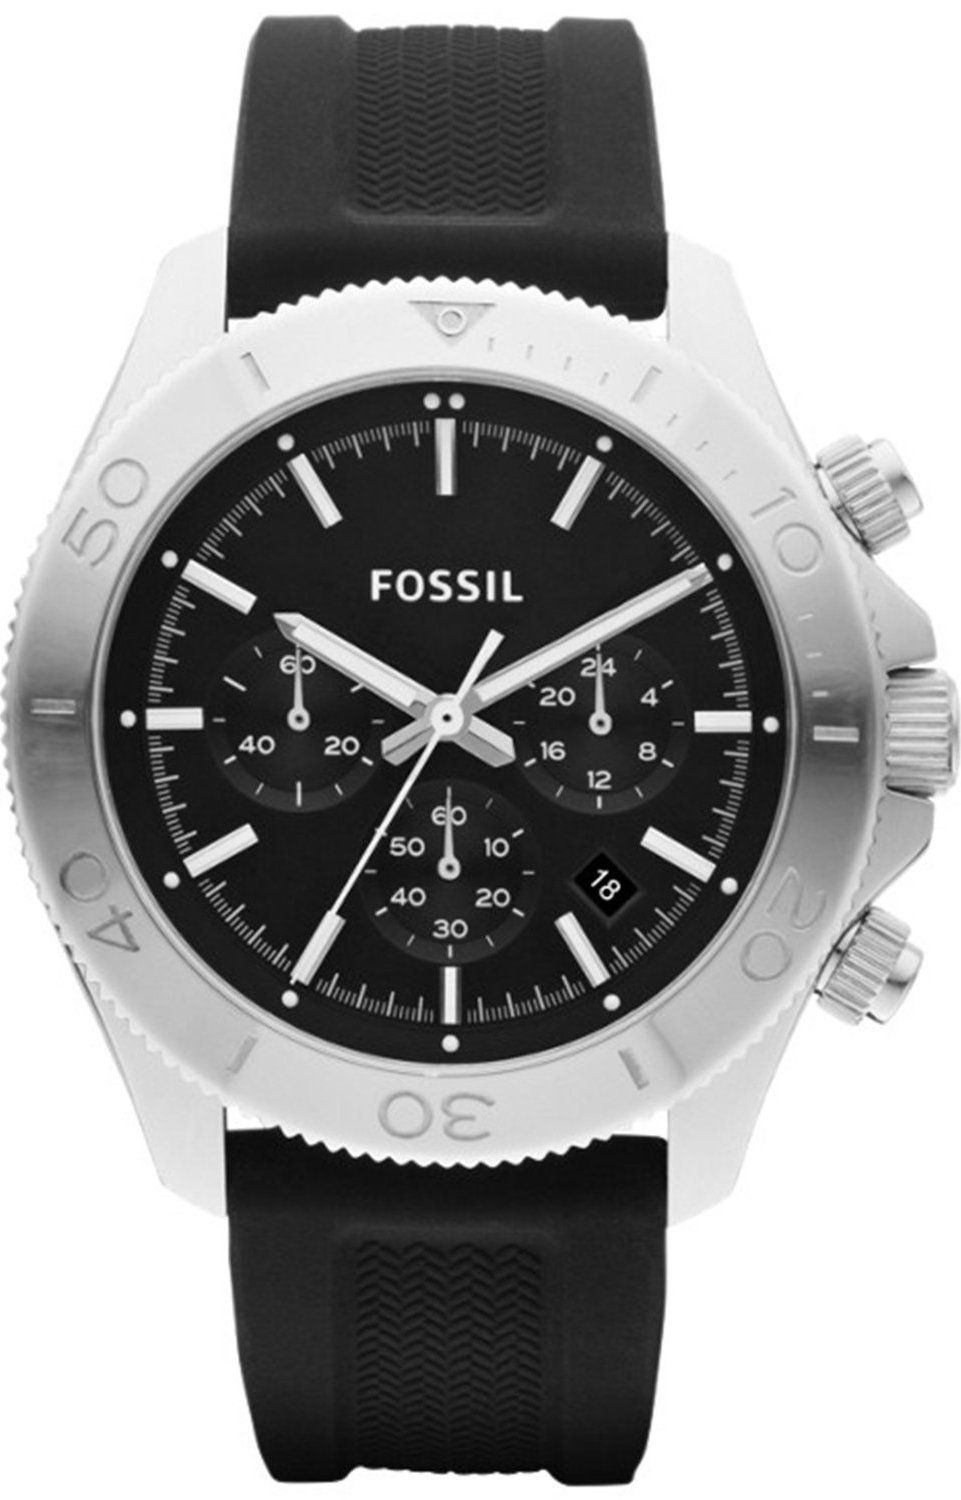 Fossil watches mens retro traveler chronograph silicone